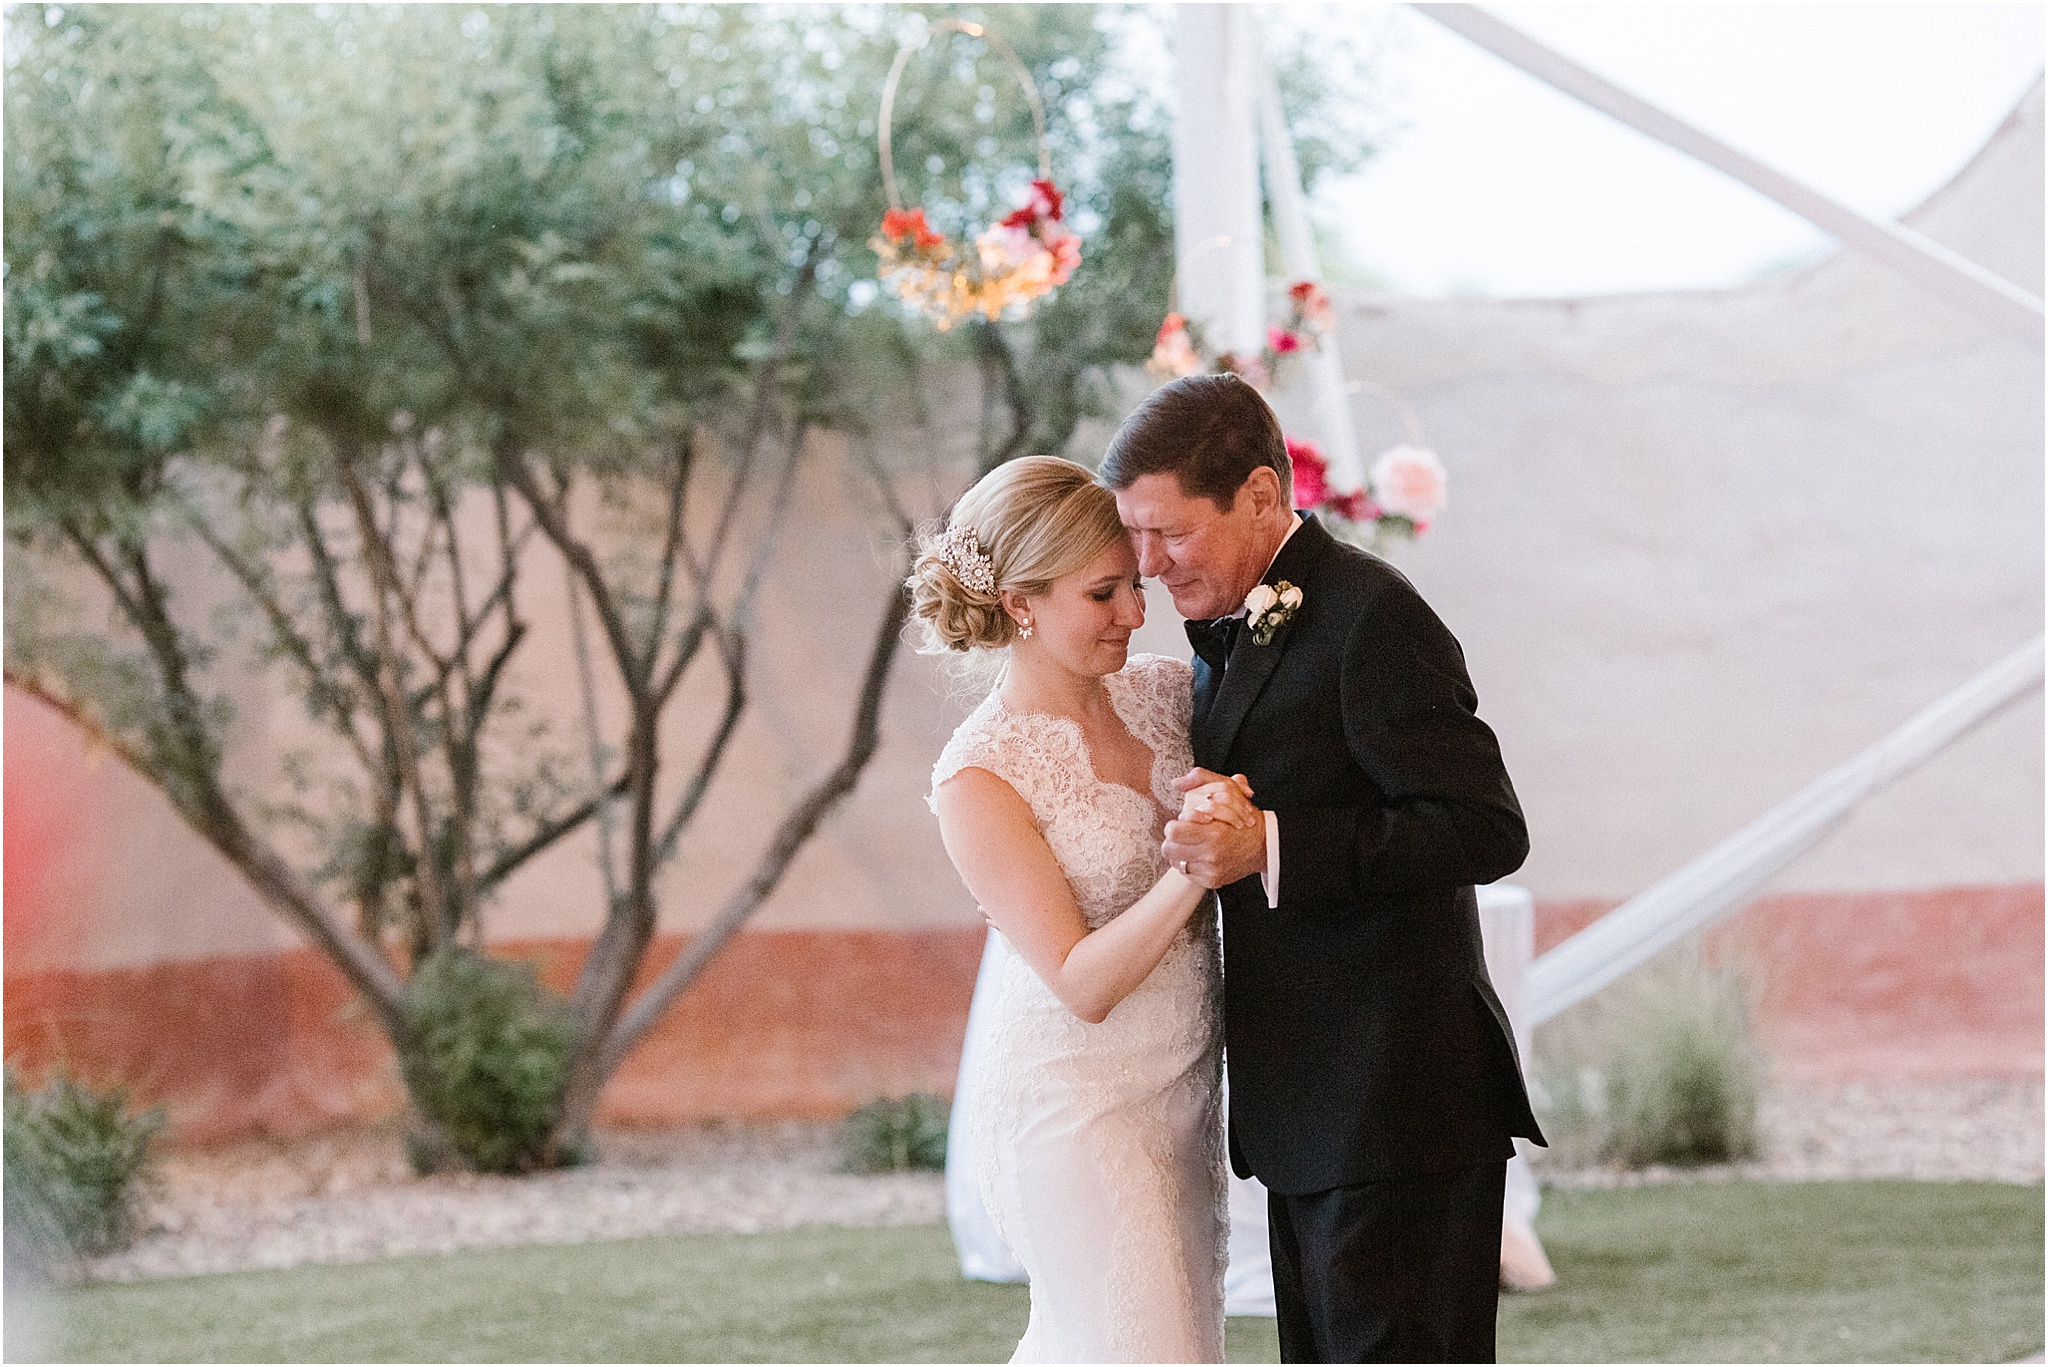 JENNA_JEROME_BLUE ROSE PHOTOGRAPHY_ABQ WEDDING_70